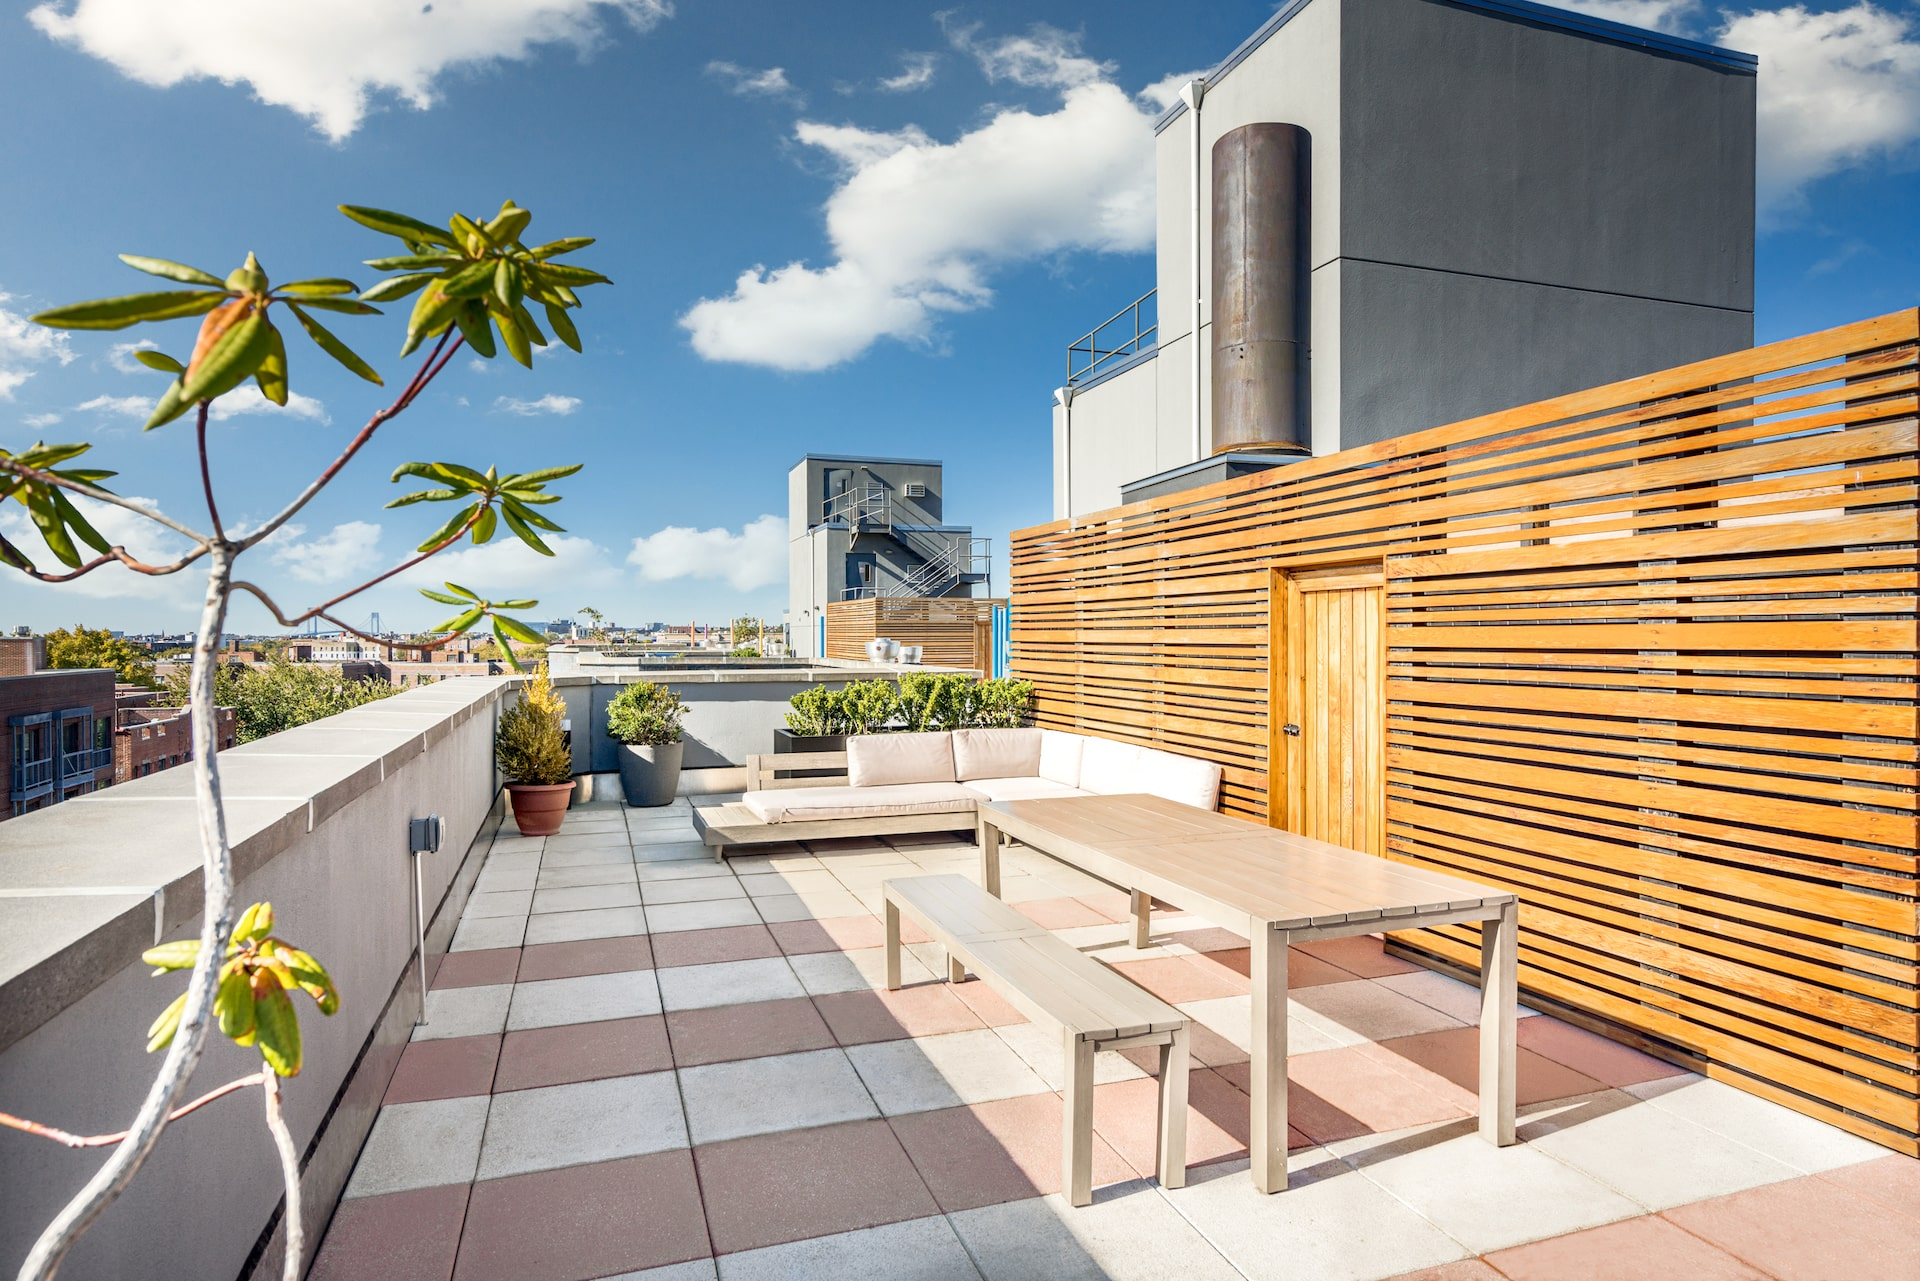 Rooftop terrace with seating